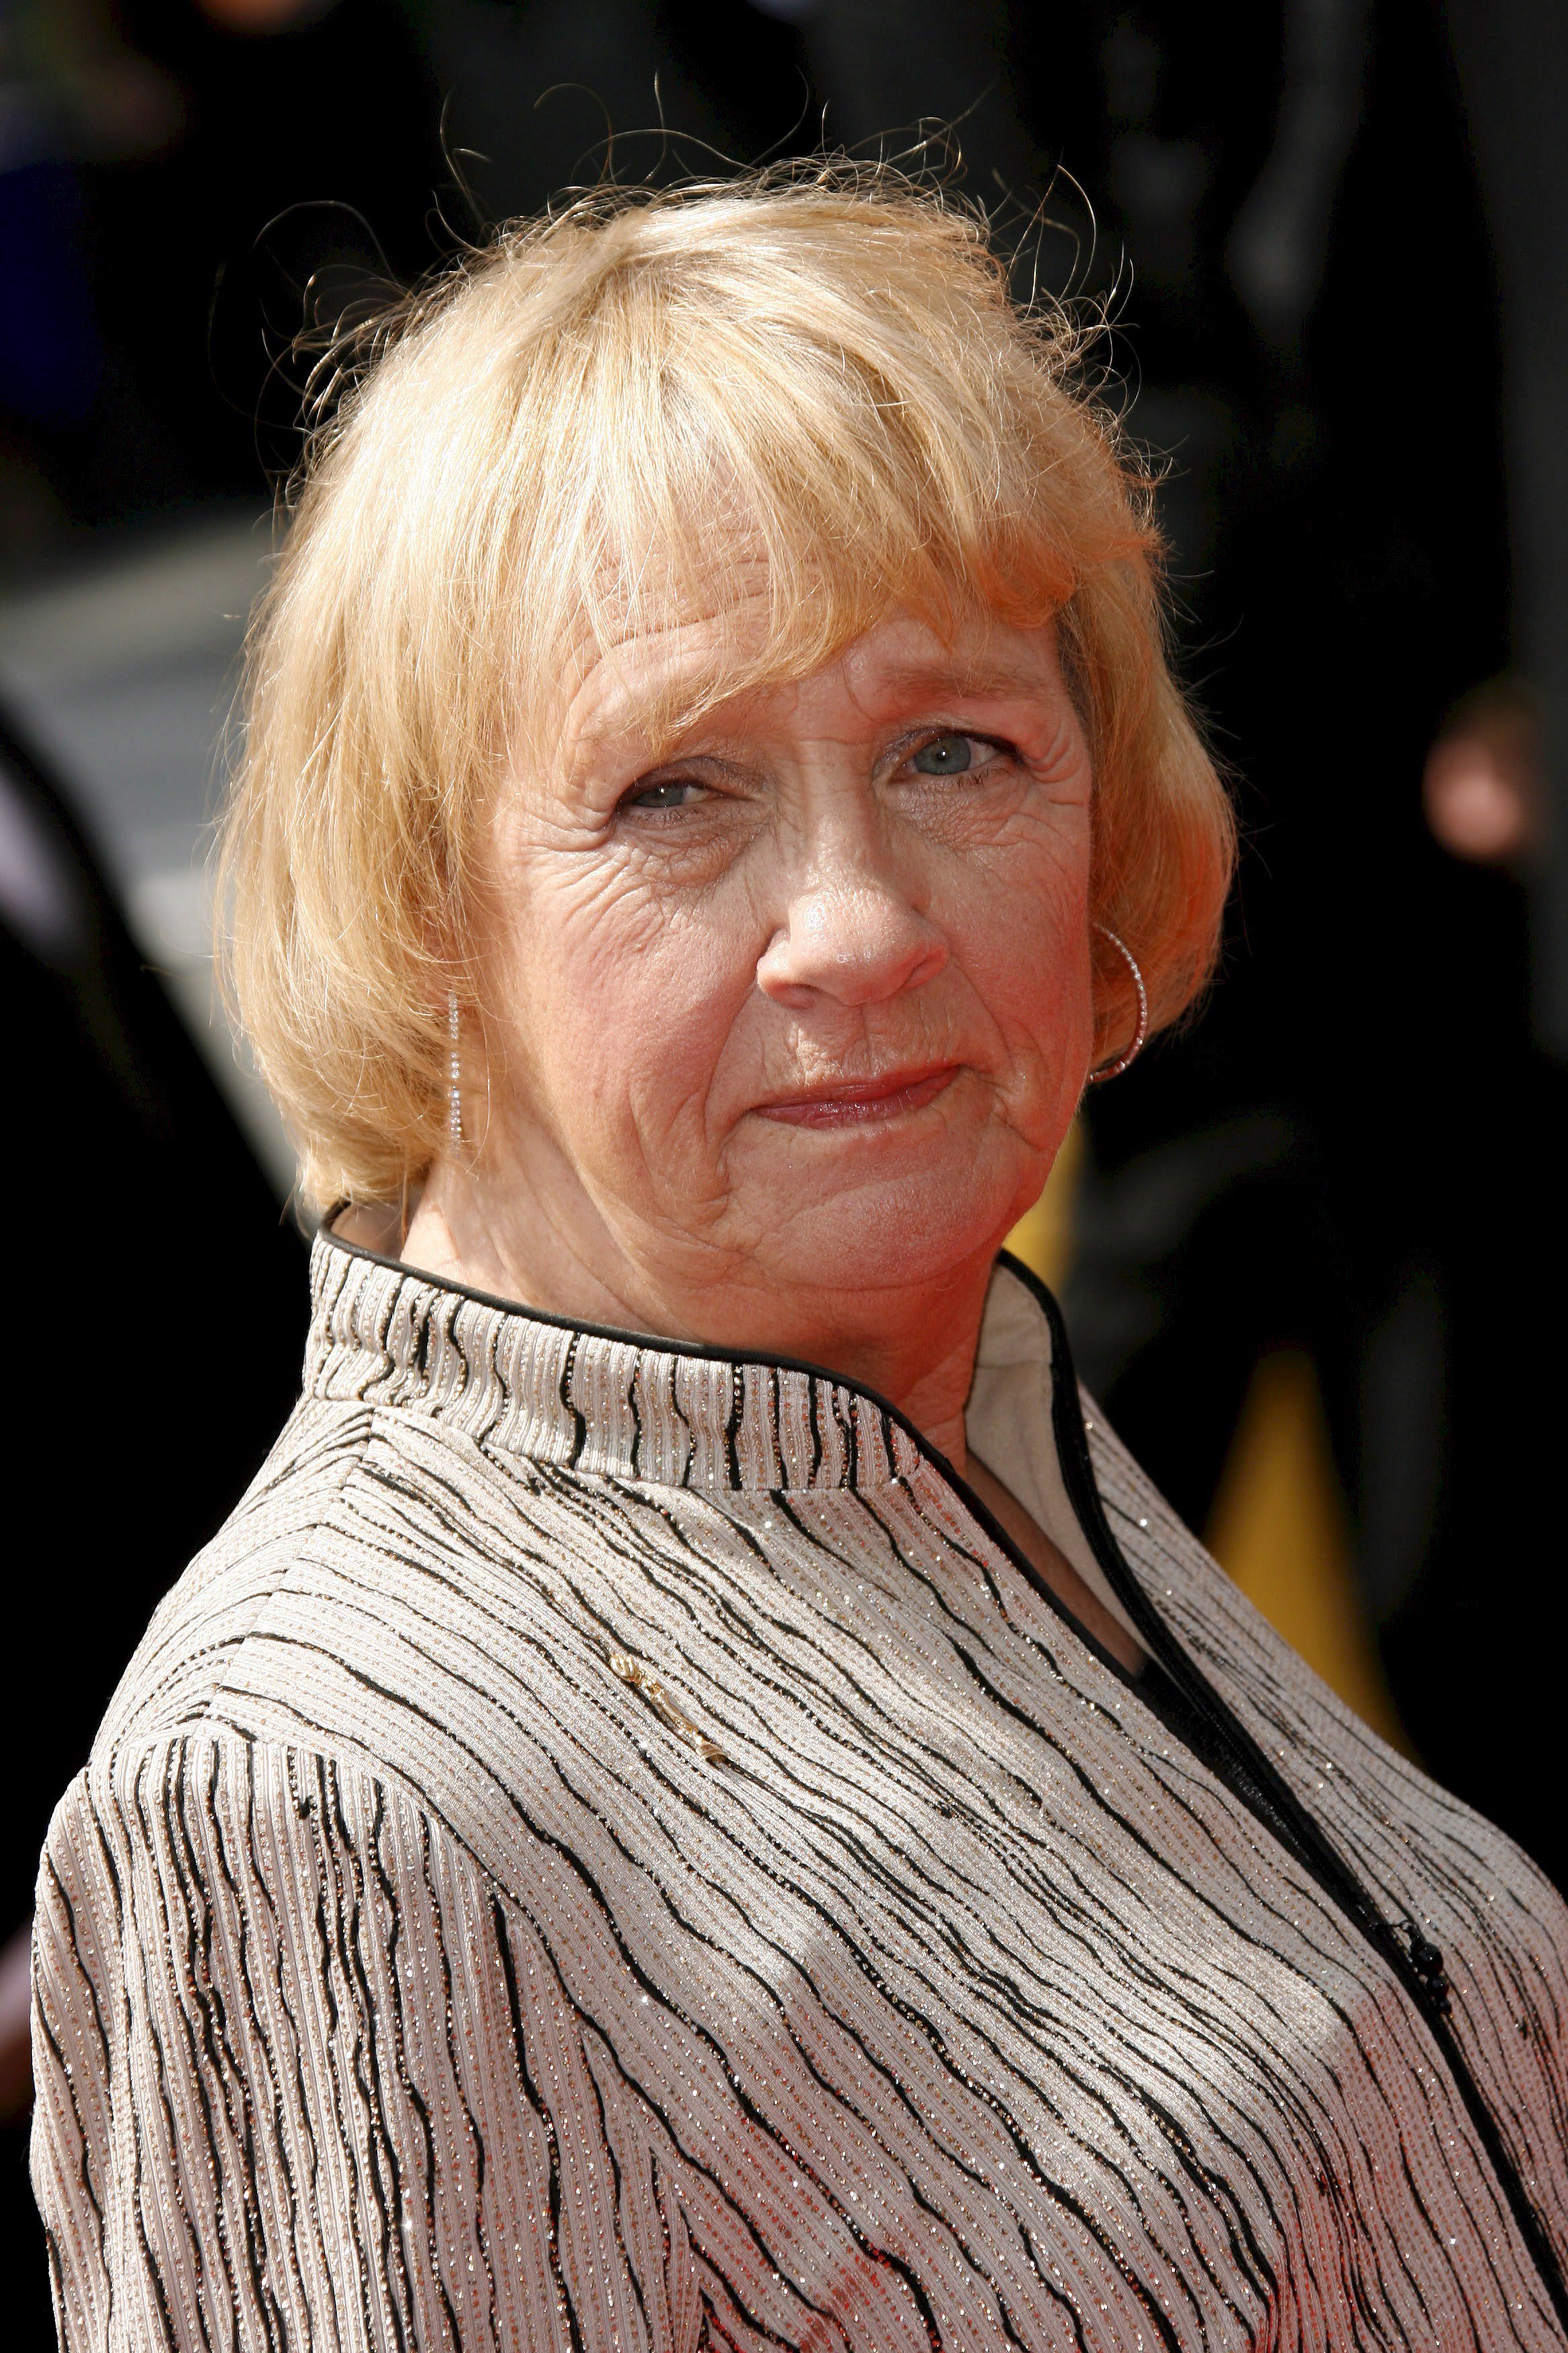 kathryn joosten movies and tv showskathryn joosten cancer, kathryn joosten young, kathryn joosten, kathryn joosten funeral, kathryn joosten died, kathryn joosten find a grave, kathryn joosten eva longoria, kathryn joosten imdb, kathryn joosten net worth, kathryn joosten muere, kathryn joosten jeune, kathryn joosten scrubs, kathryn joosten morte, kathryn joosten tot, kathryn joosten grey's anatomy, kathryn joosten interview, kathryn joosten charmed, kathryn joosten movies and tv shows, kathryn joosten buffy, kathryn joosten death reactions